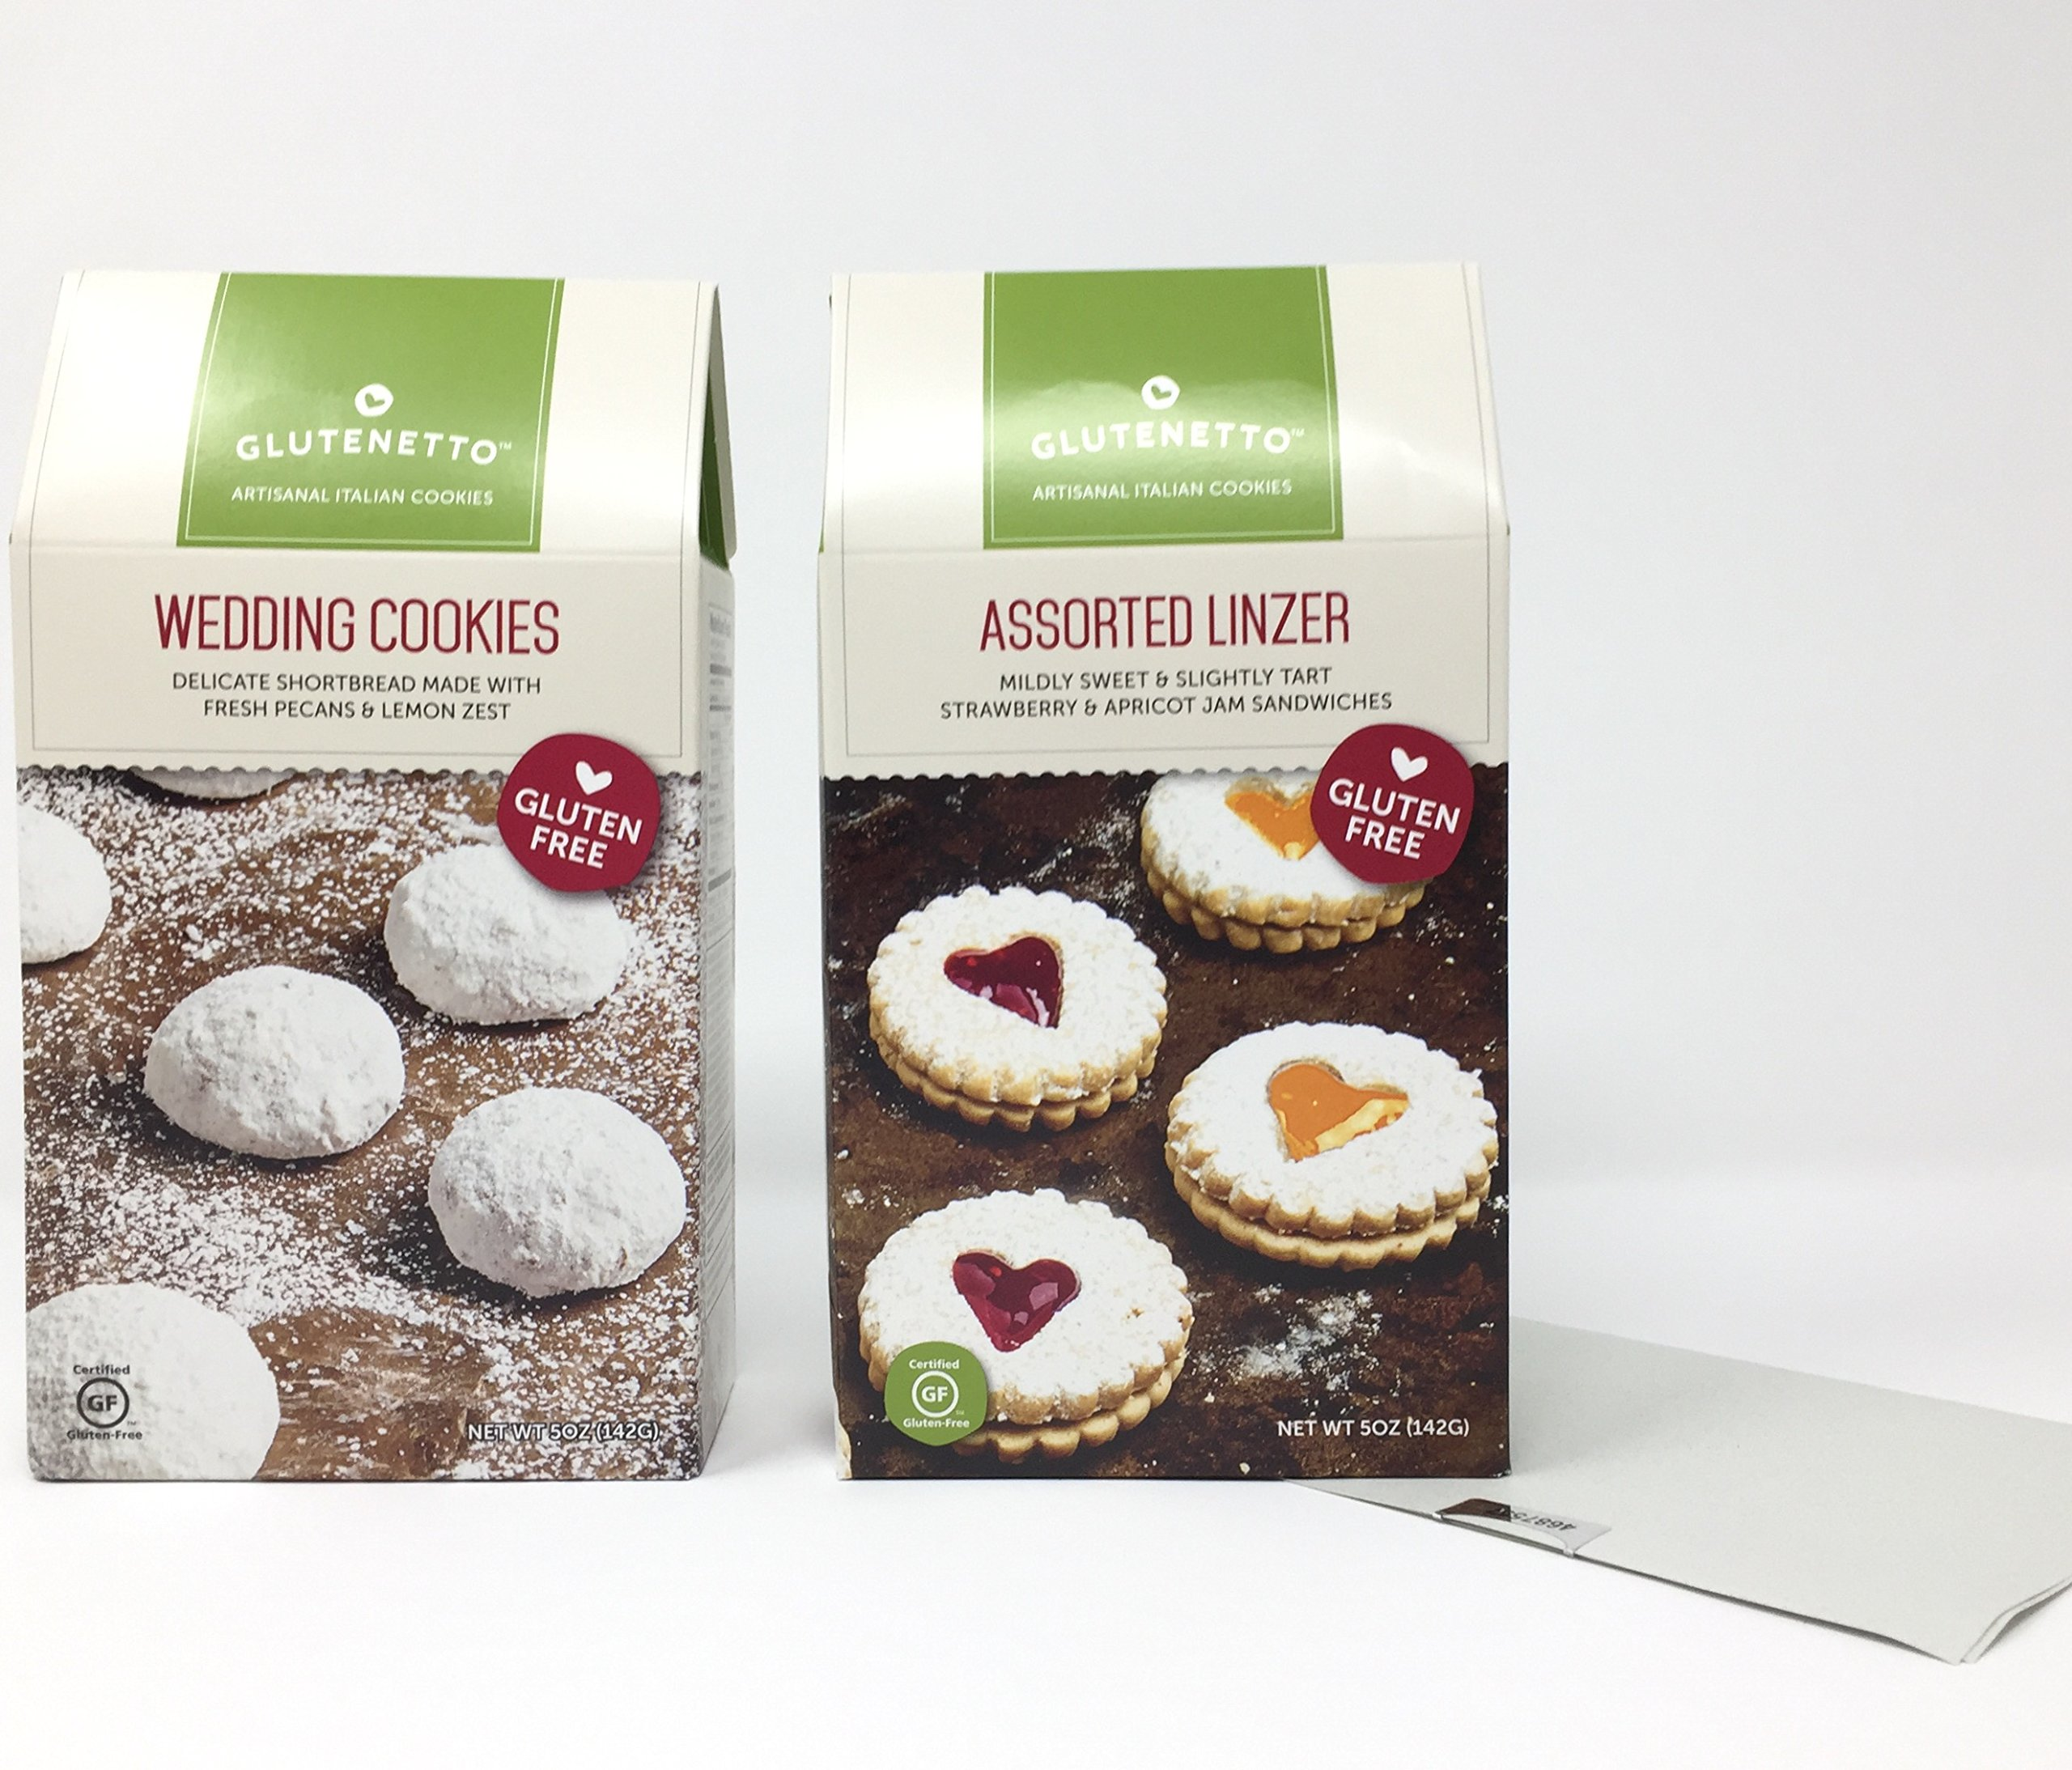 Gluten Free Gourmet Cookies: Assorted Strawberry and Apricot Linzer And Shortbread Wedding Plus a Bonus Free Gluten-Free Nut-Free No-Bake Candy Recipe from Z-Organics. Great Healthy Bundle (3 Items)